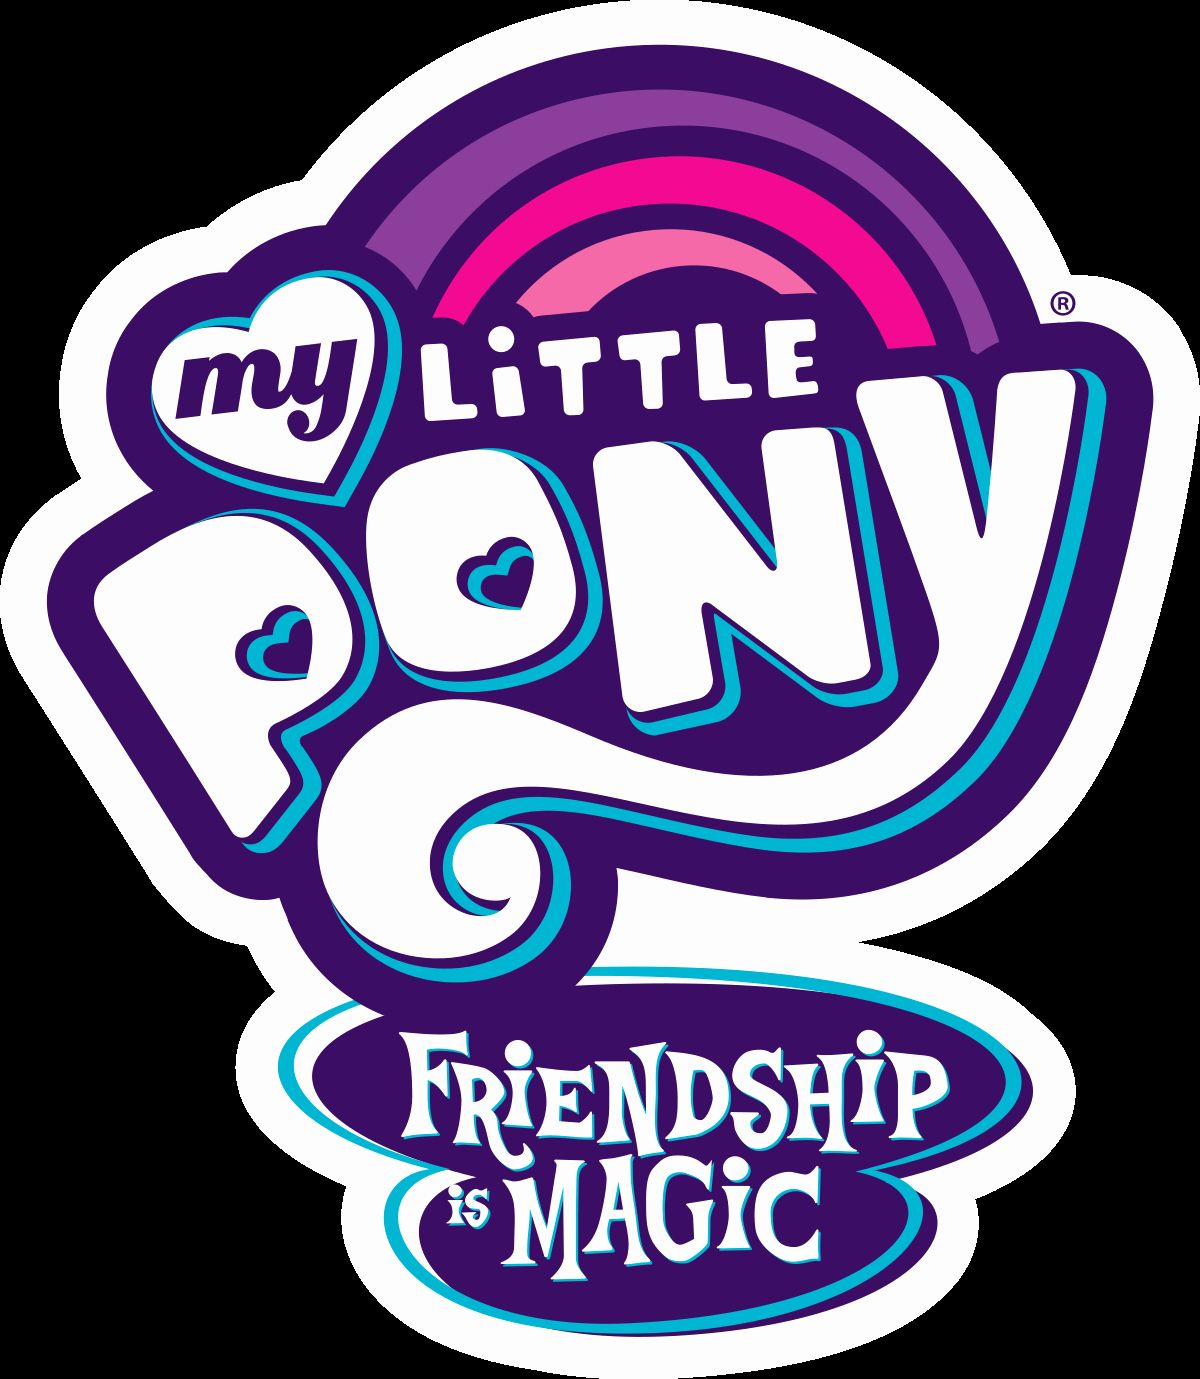 Coloring Book Artist Job Luxury My Little Pony Friendship Is Magic In 2020 Spring Coloring Pages My Little Pony Friendship New My Little Pony